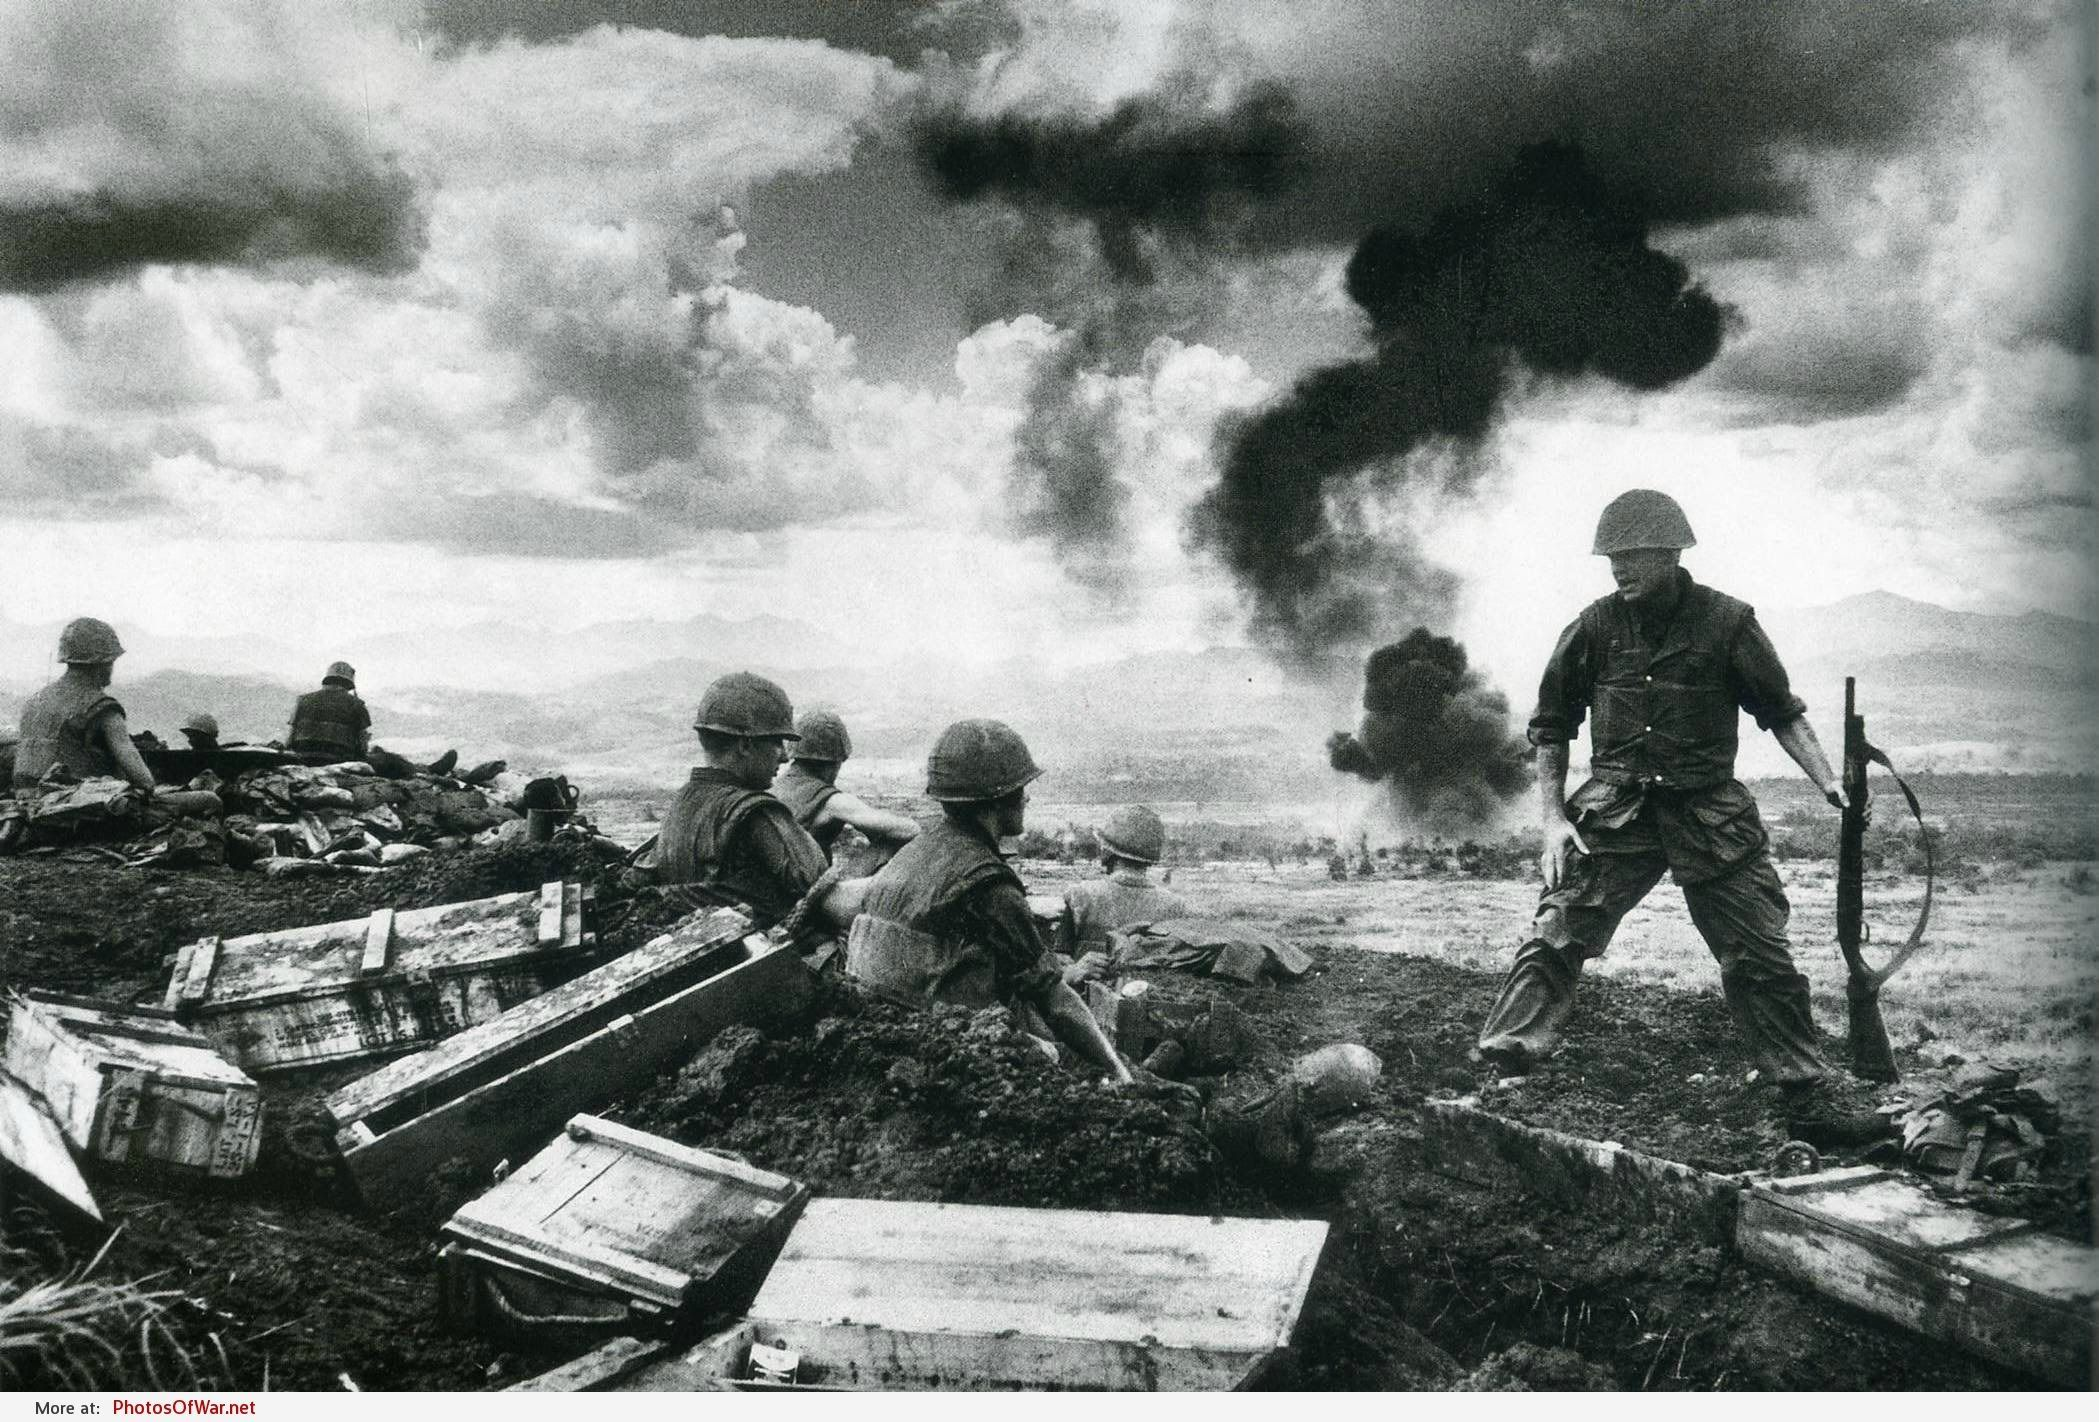 battle of khe sanh The history reader is a blog for history lovers and readers of history books.